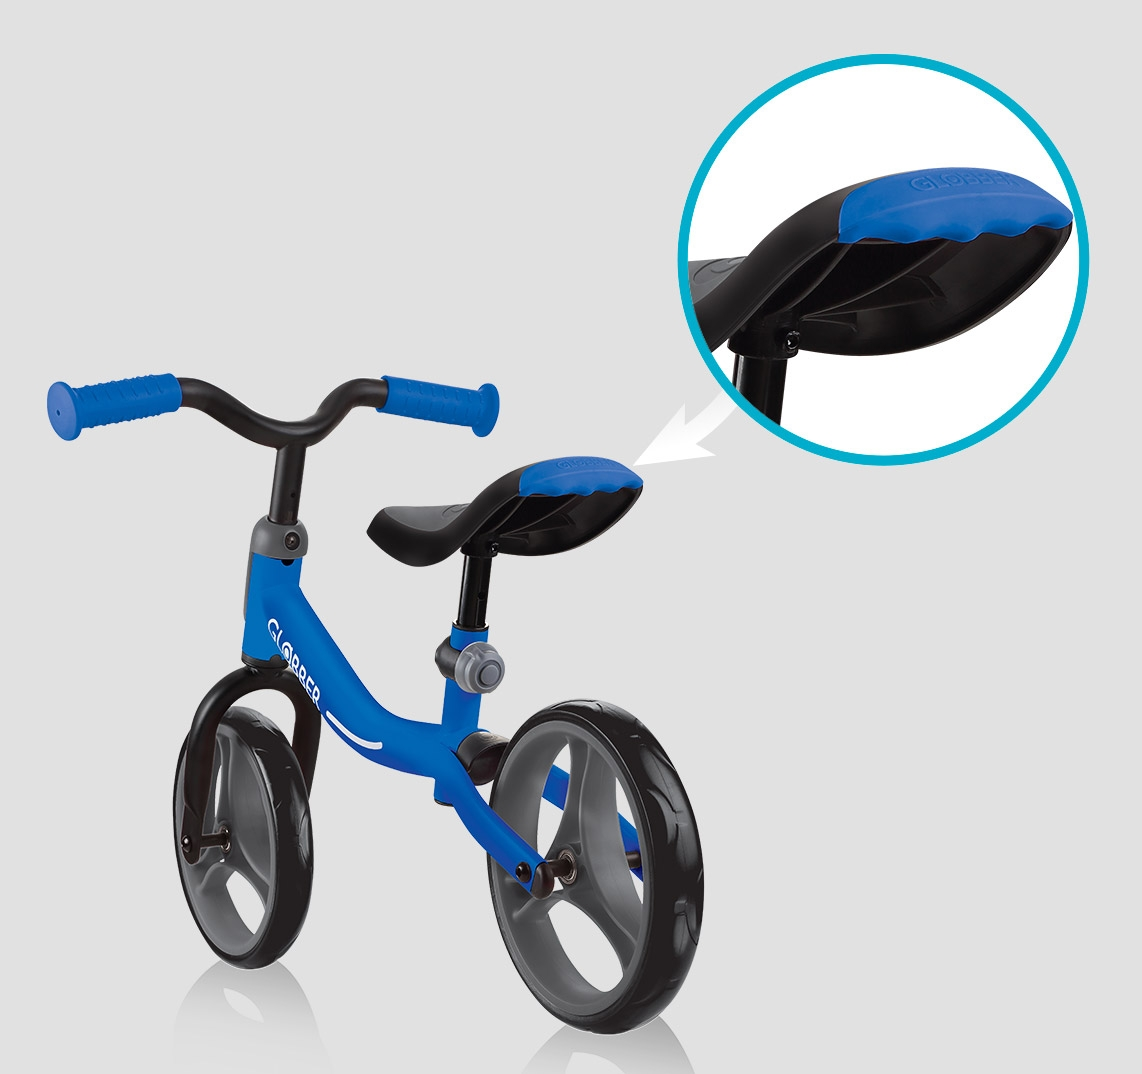 GO-BIKE-balance-bike-for-toddlers-and-kids-with-smart-features